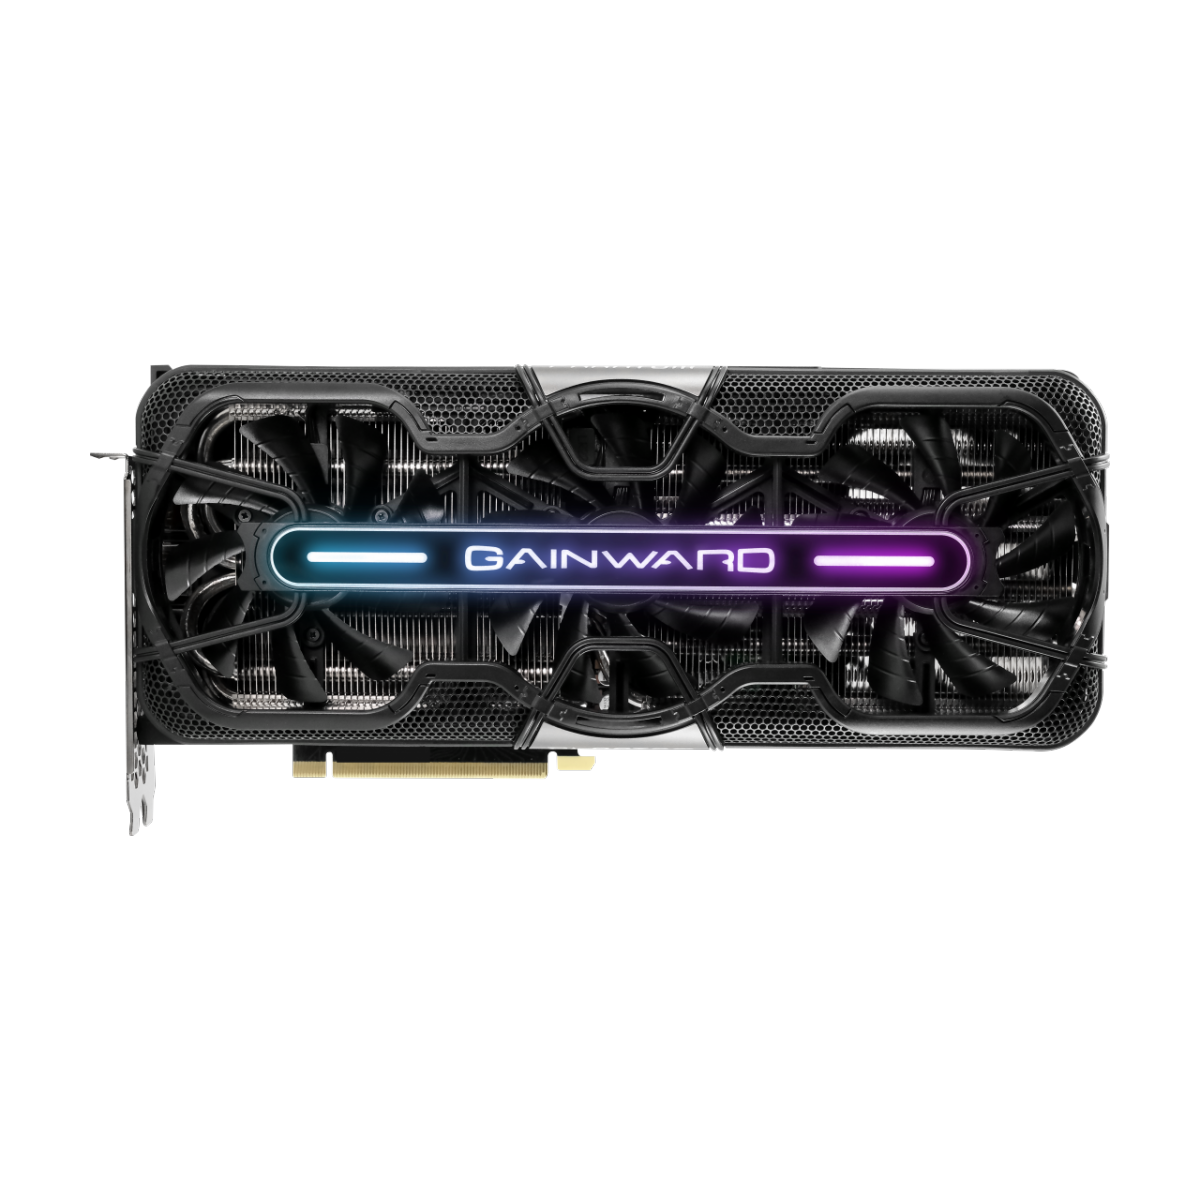 Placa de Vídeo Gainward, GeForce RTX 3090 Phantom, 24GB, GDDR6, 384Bit, NED3090T19SB-1021P